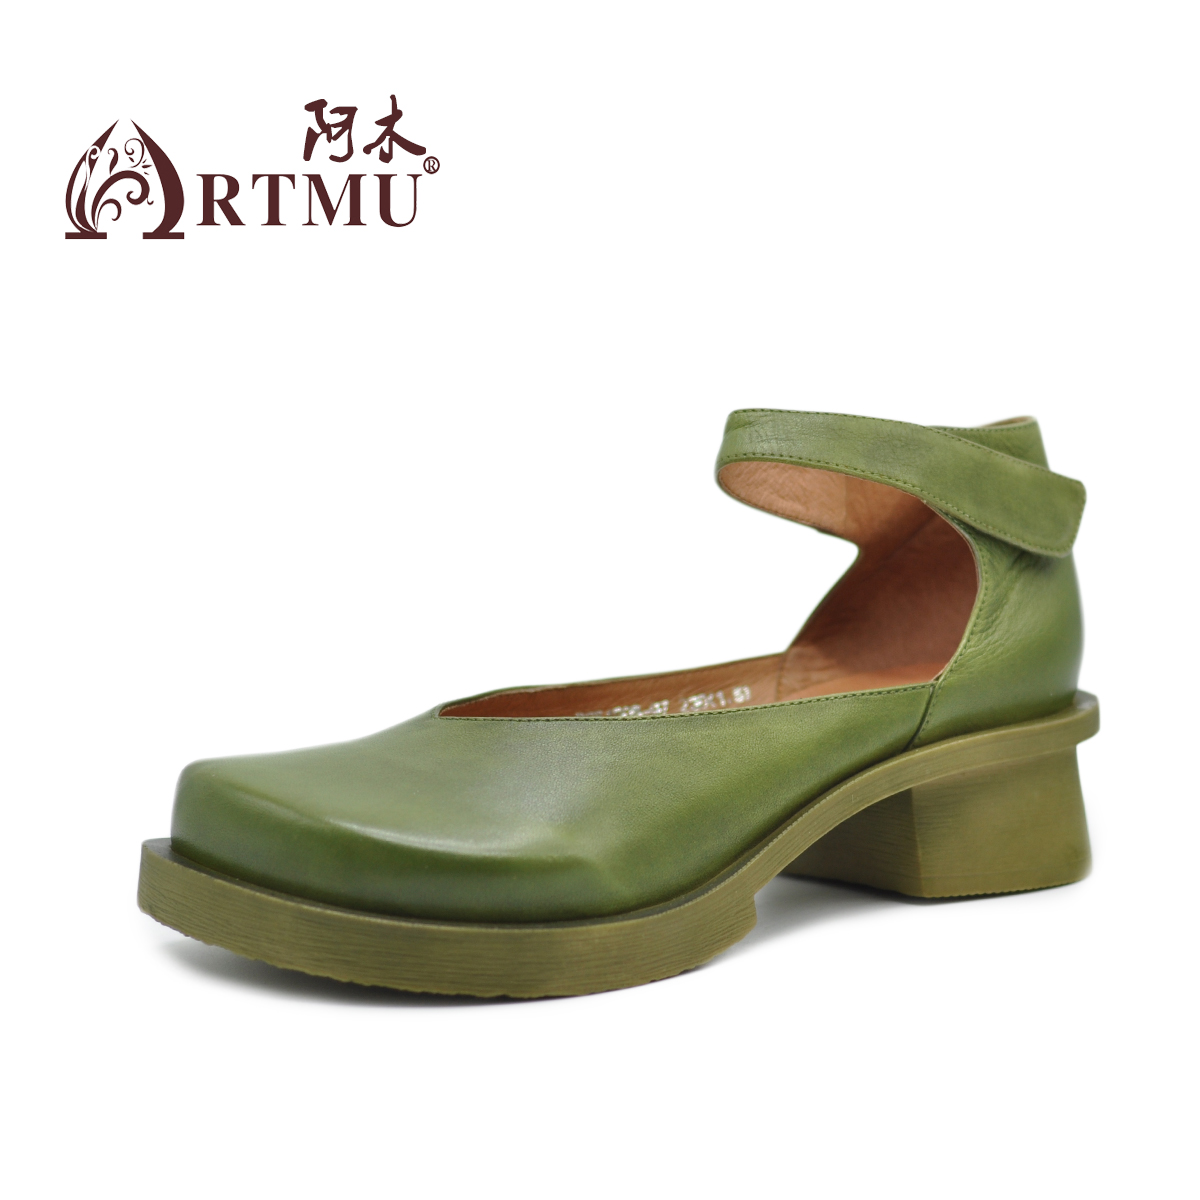 Artmu Original Thick Heel Mary Jane Shoes Handmade Genuine Leather Women Shoes Hook Loop Green Shoes Fashion 2019 New Design-in Women's Pumps from Shoes    3